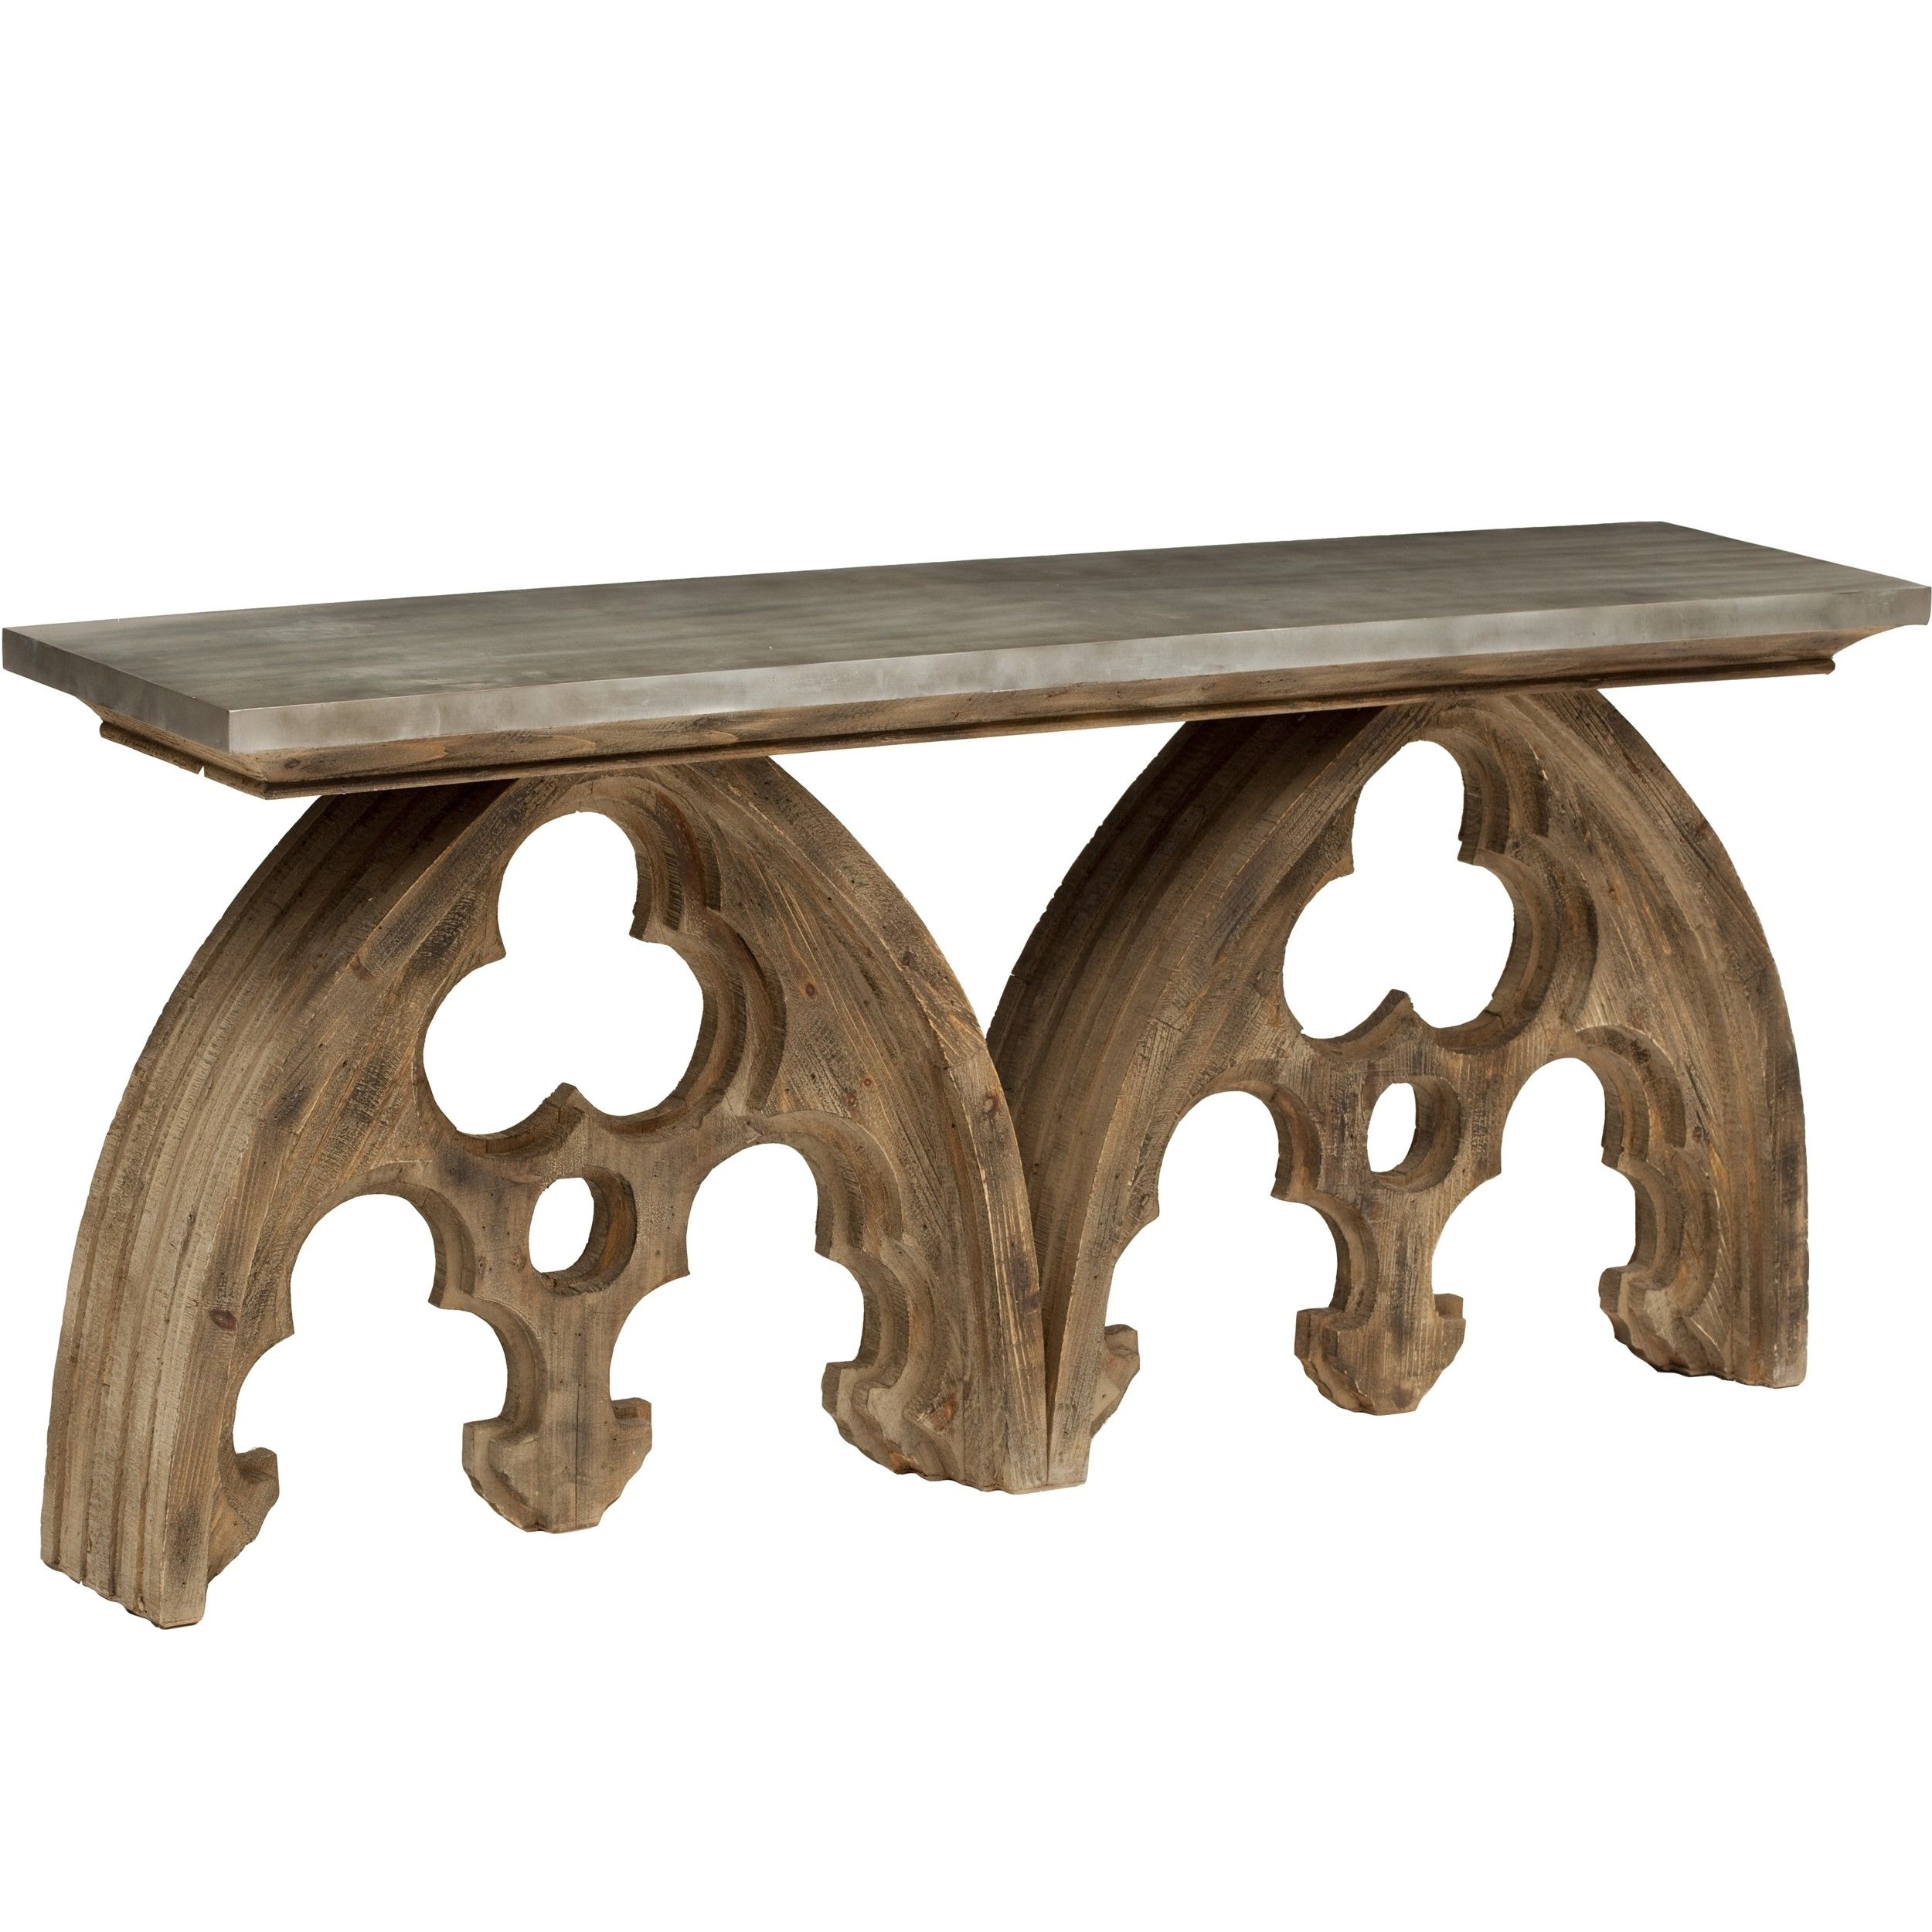 Arched cathedral table furniture accent tables console tables best sellers global chic